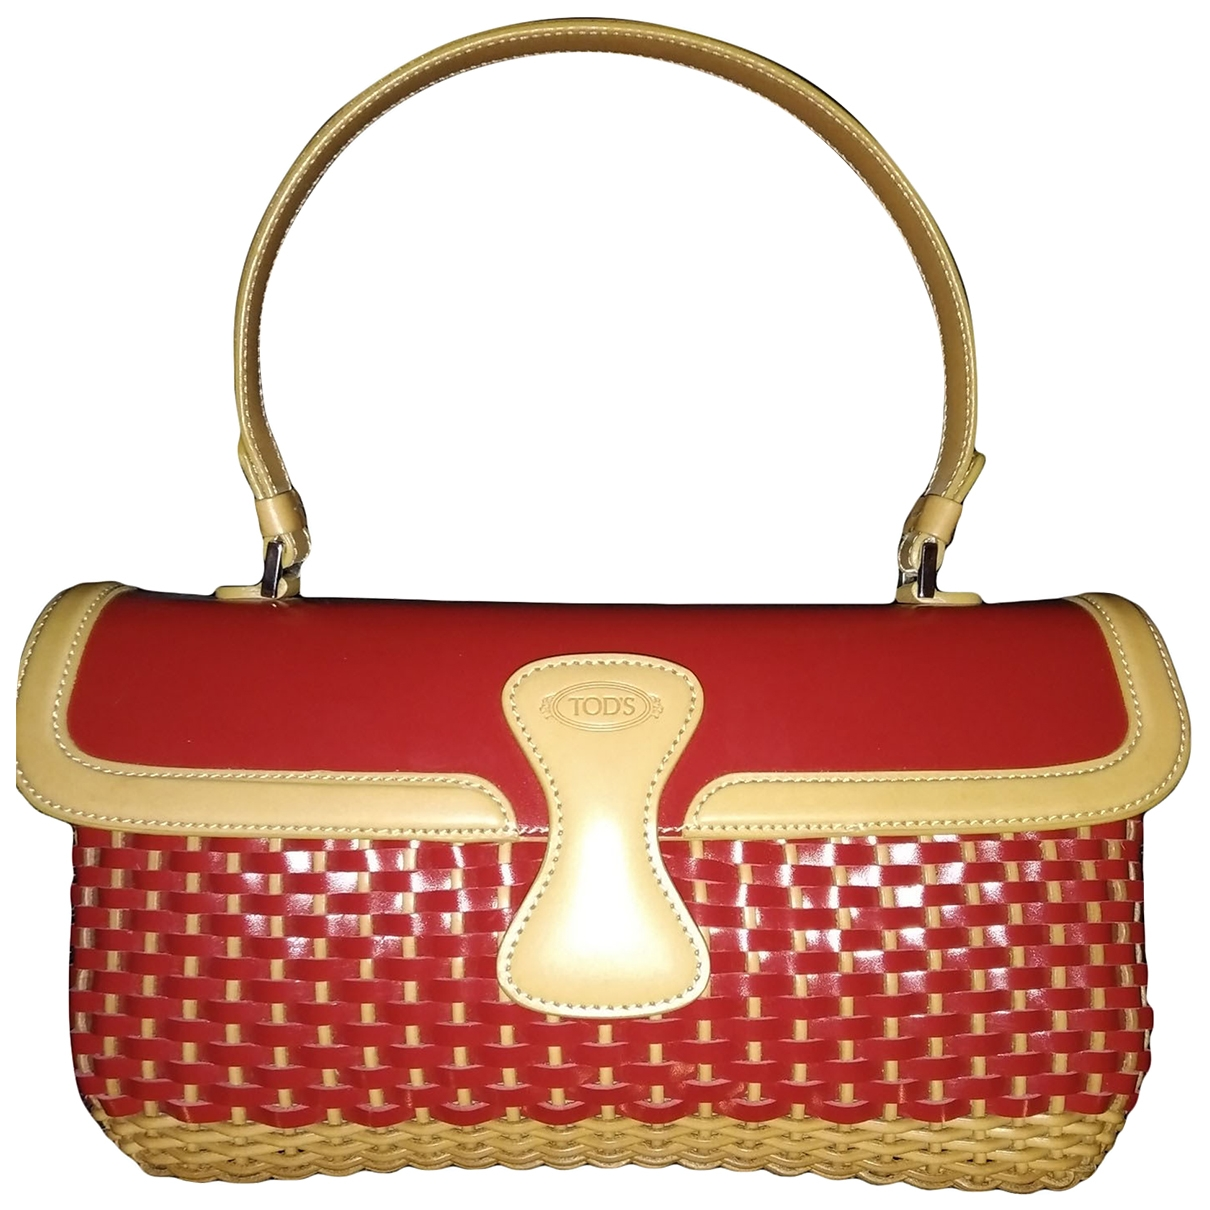 Tod's \N Red Leather handbag for Women \N